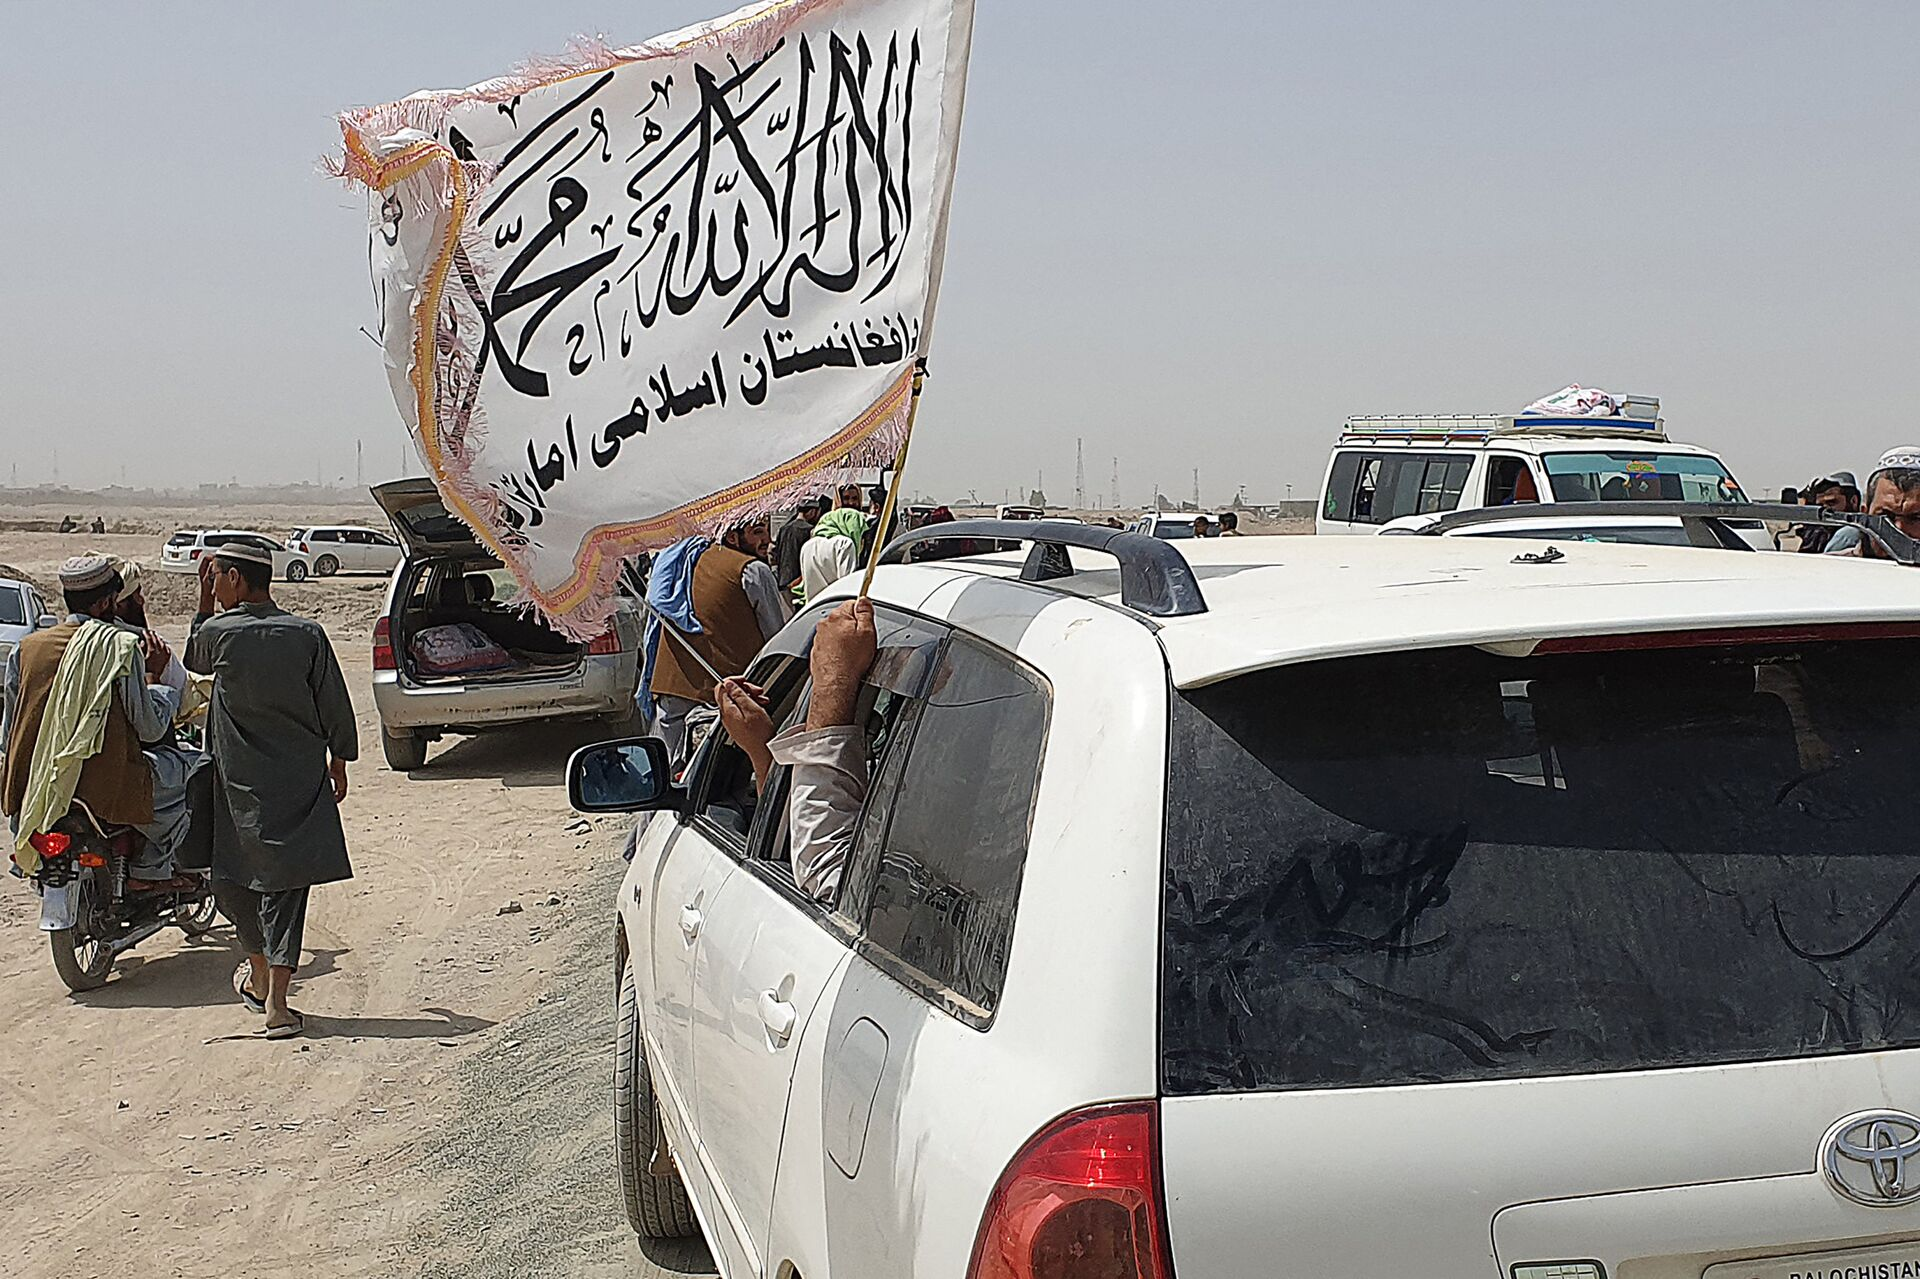 People wave a Taliban flag as they drive through the Pakistani border town of Chaman on July 14, 2021, after the Taliban claimed they had captured the Afghan side of the border crossing of Spin Boldak along the frontier with Pakistan - Sputnik International, 1920, 07.09.2021